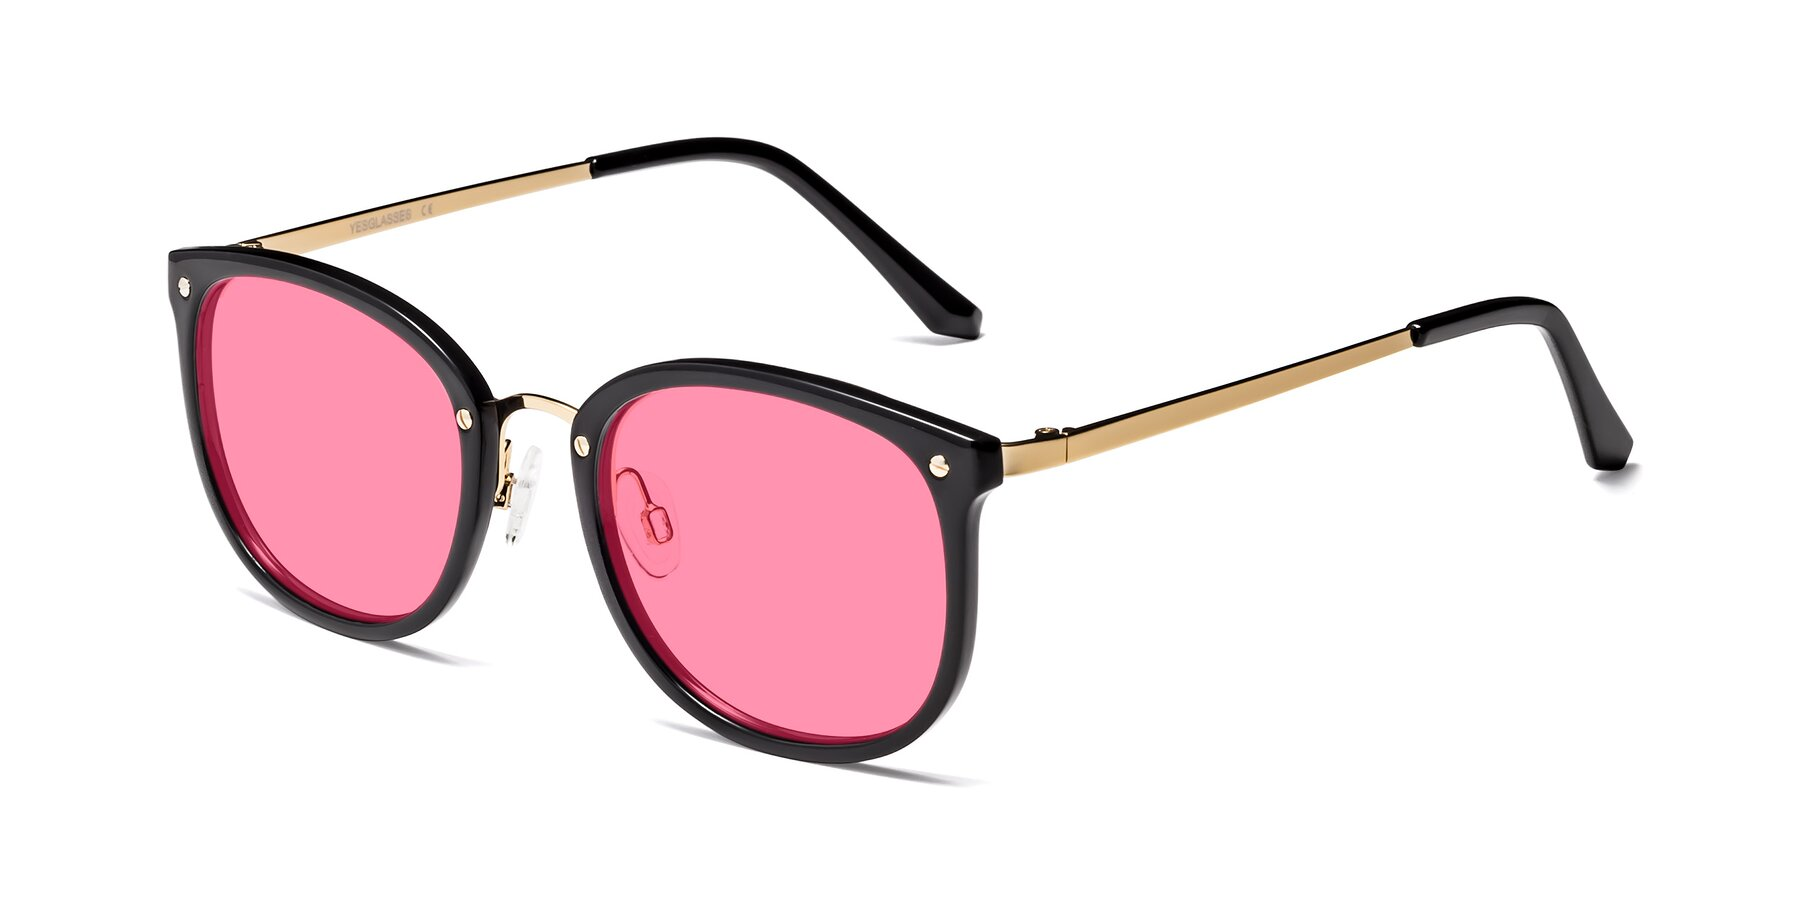 Angle of Timeless in Black-Gold with Pink Tinted Lenses